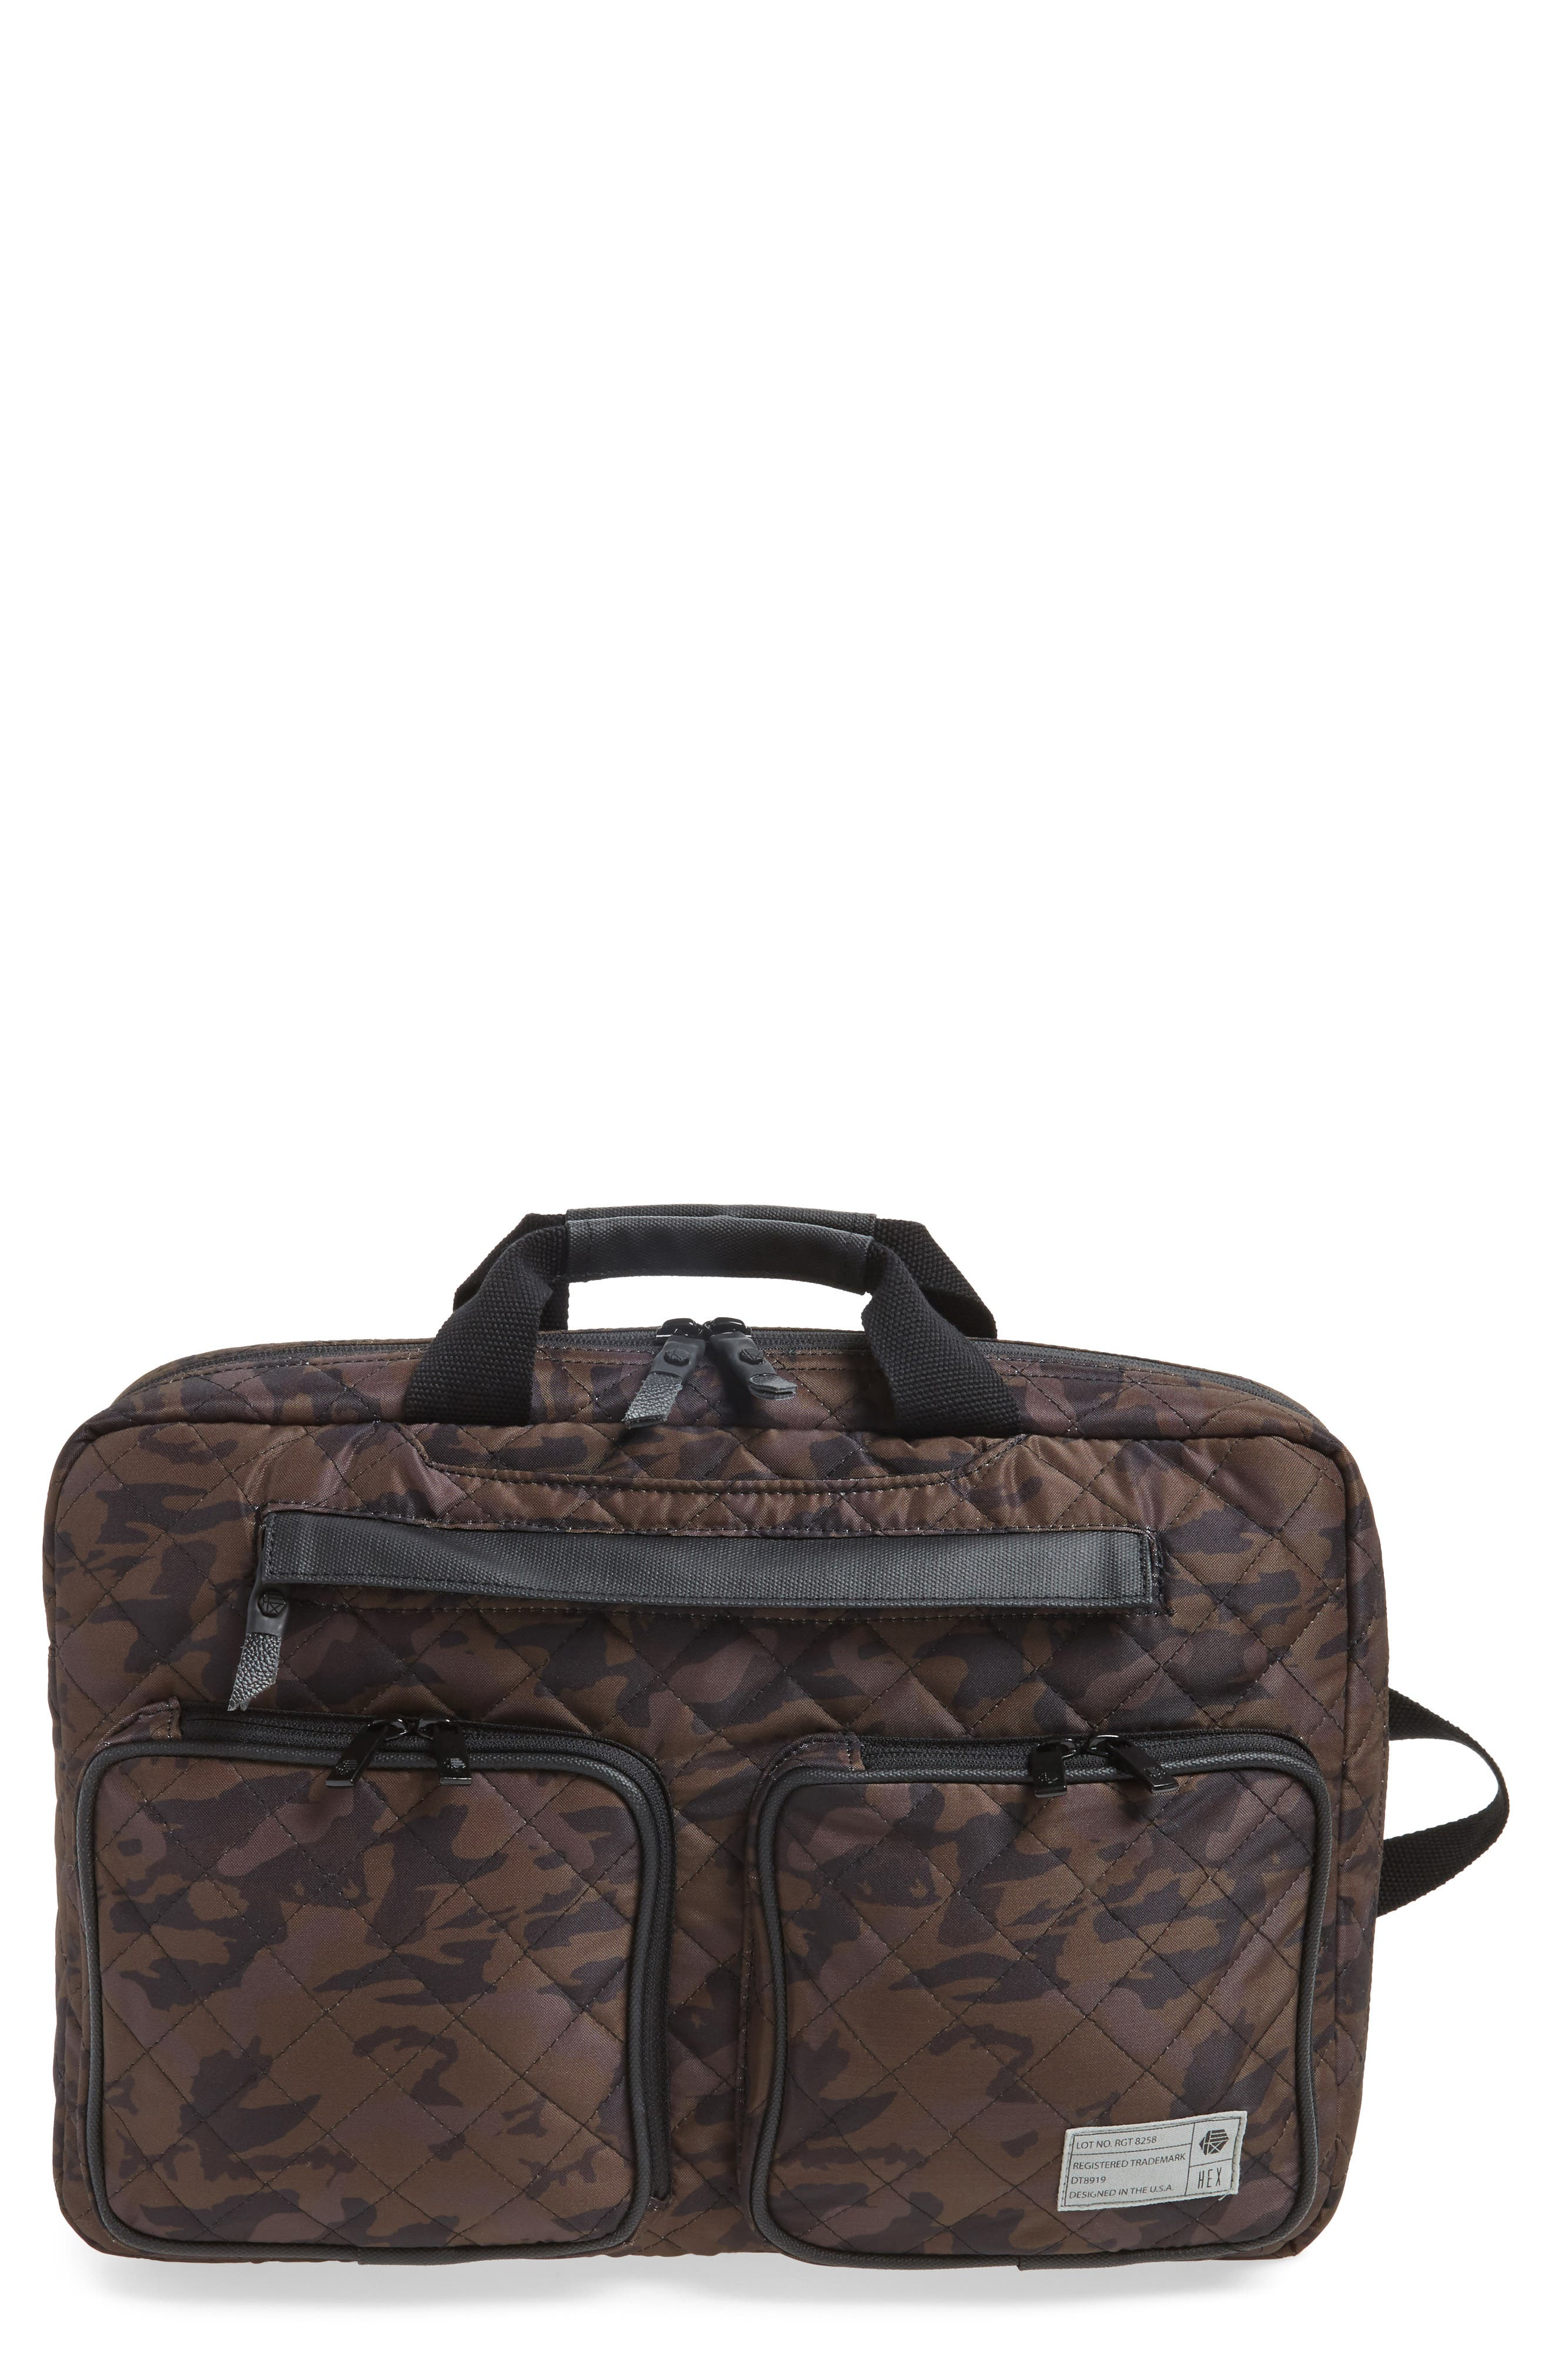 Radar Convertible Water Resistant Briefcase,                             Main thumbnail 1, color,                             Quilted Camo